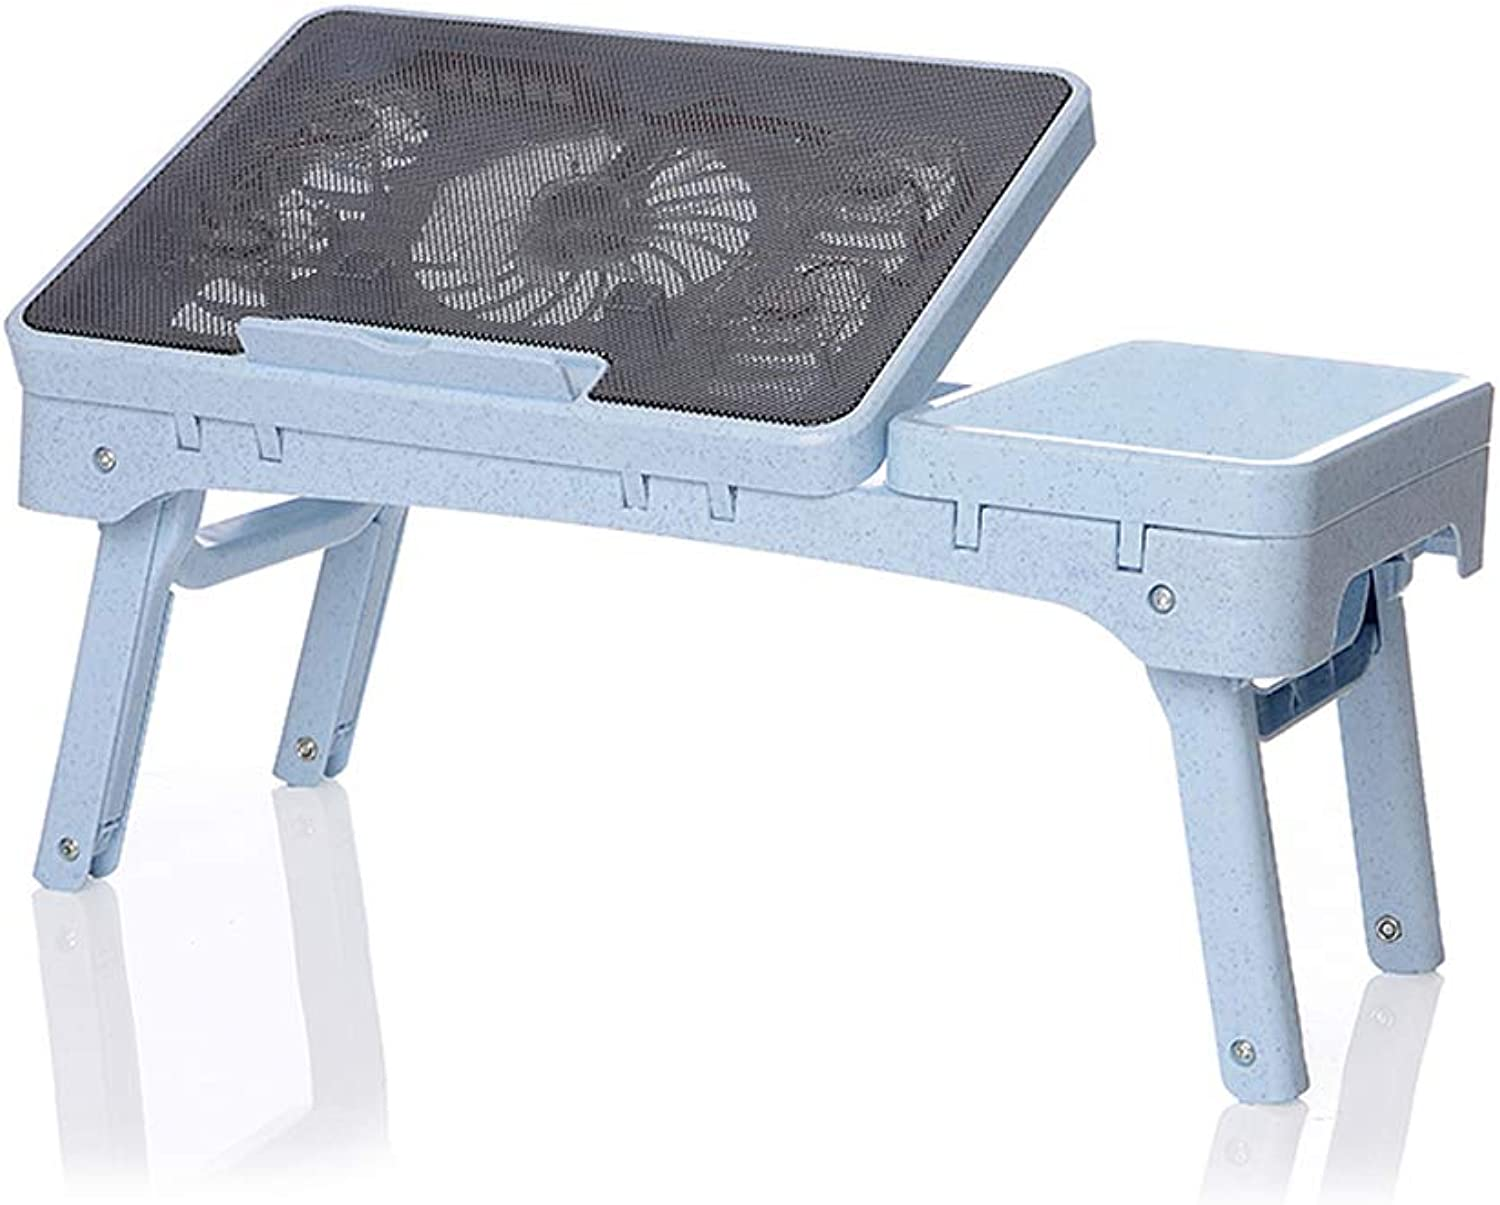 Computer Desk Cooling Laptop Desk with Dormitory Desk folding table Portable Mobile Small Table